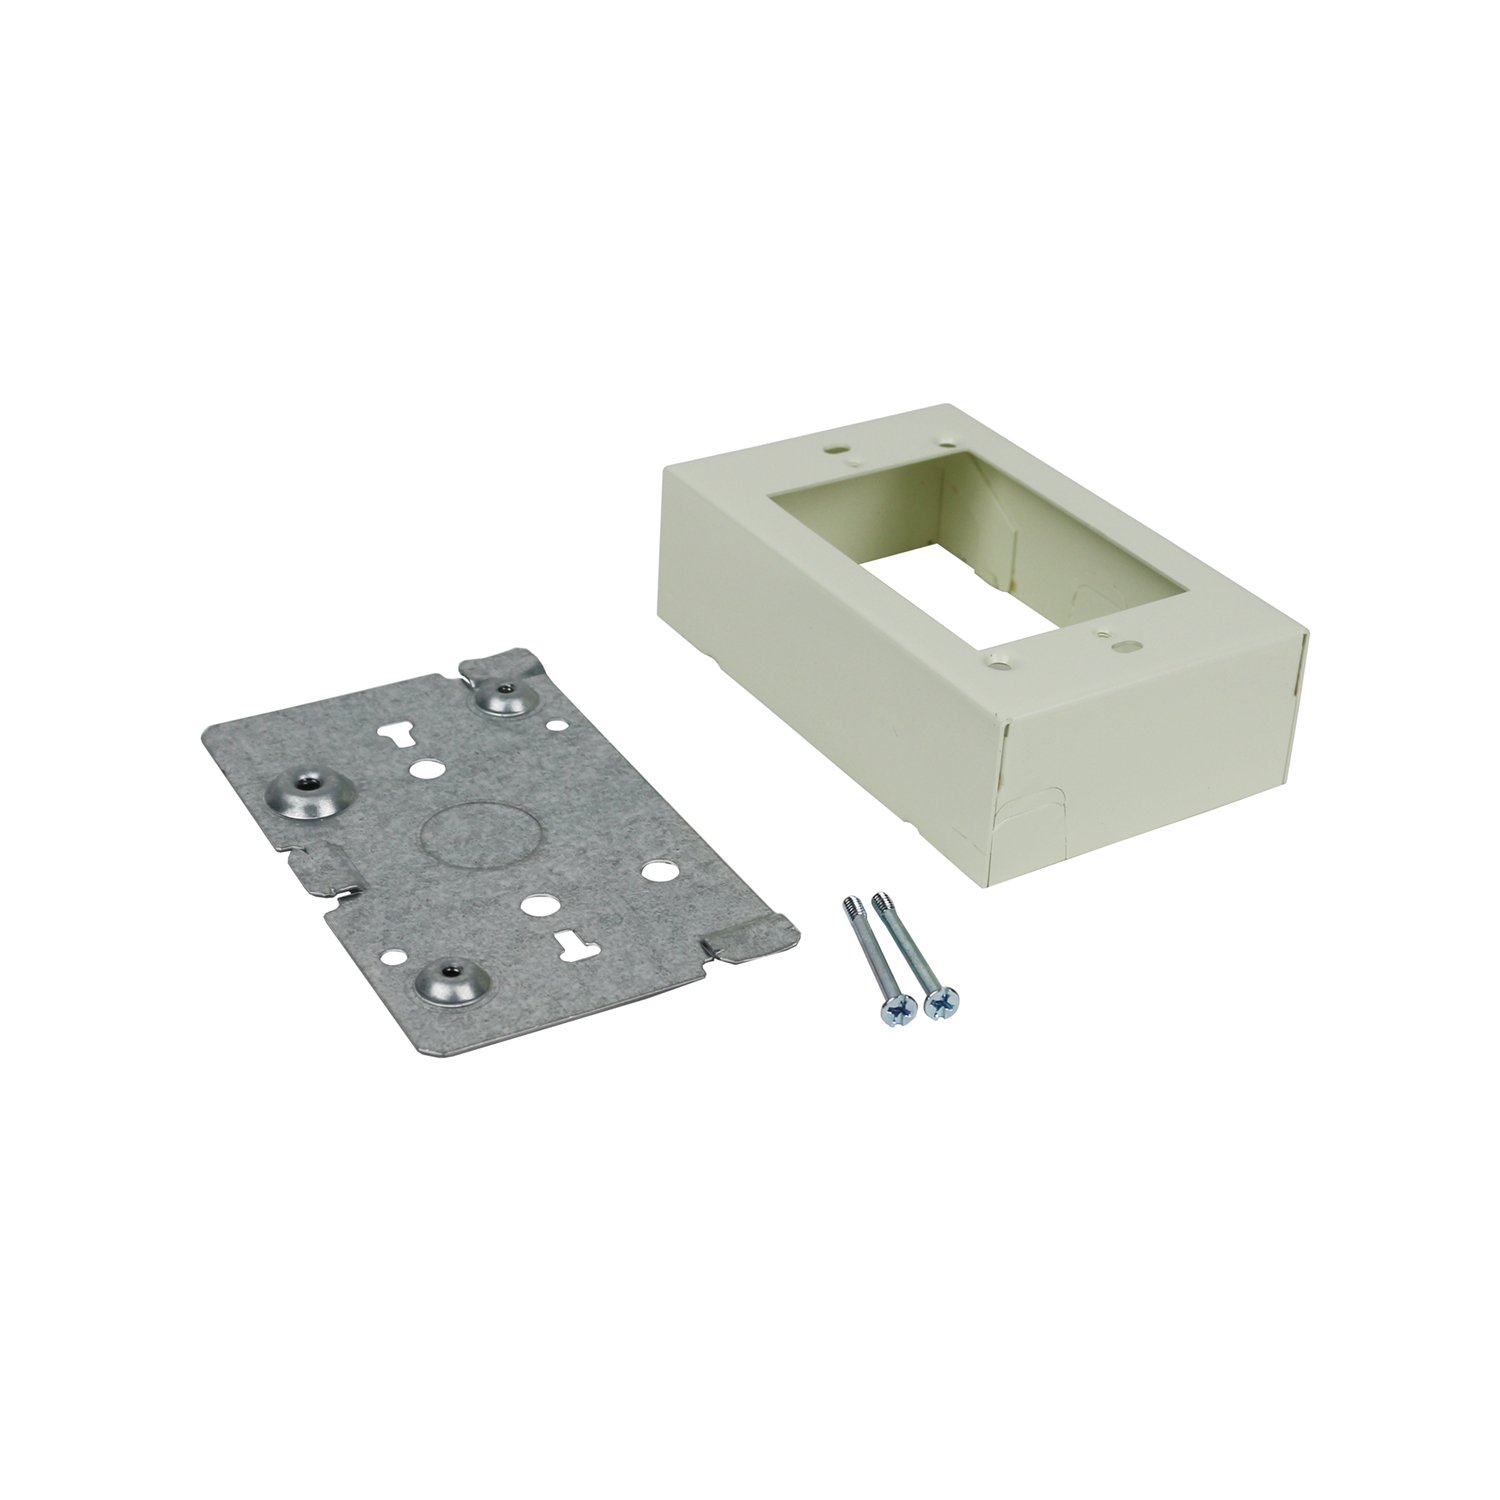 Legrand Wiremold V5741 Switch and Receptacle Box